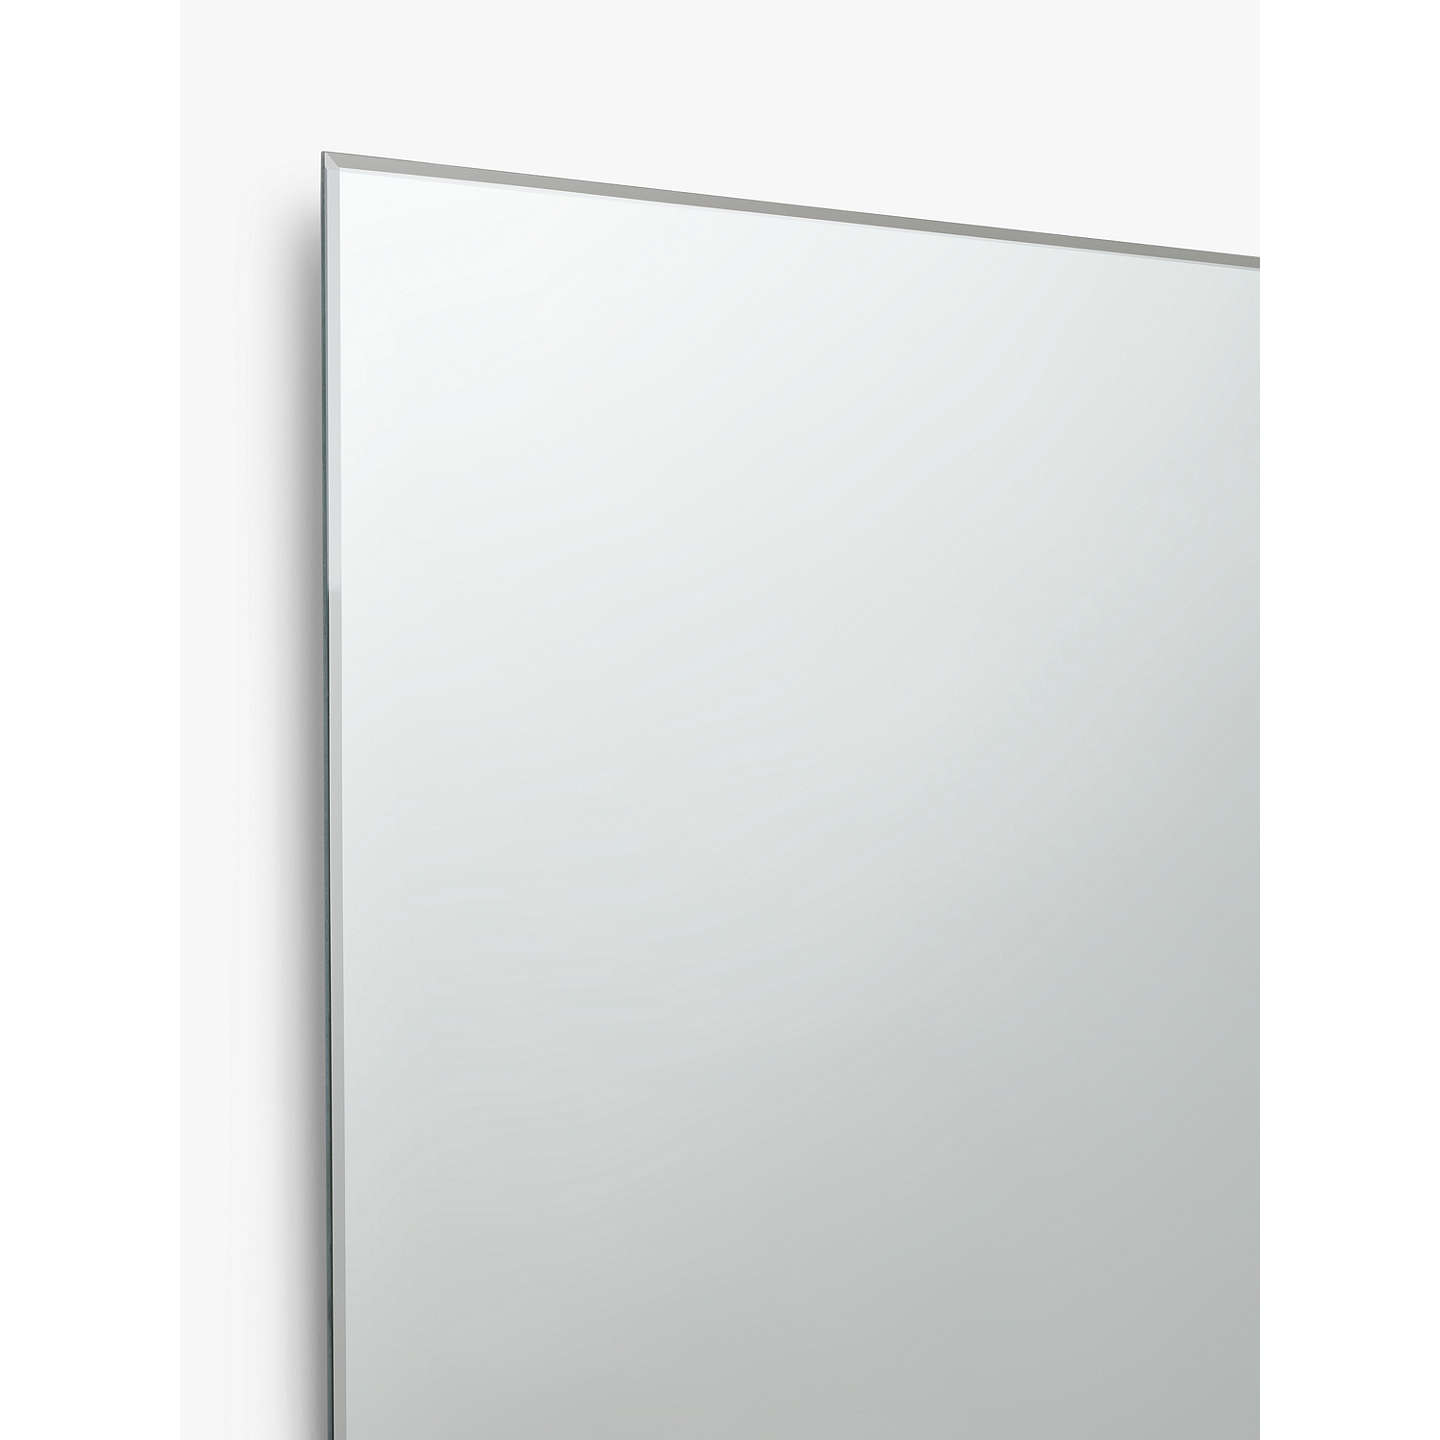 john lewis bathroom cabinets mirrors. Black Bedroom Furniture Sets. Home Design Ideas